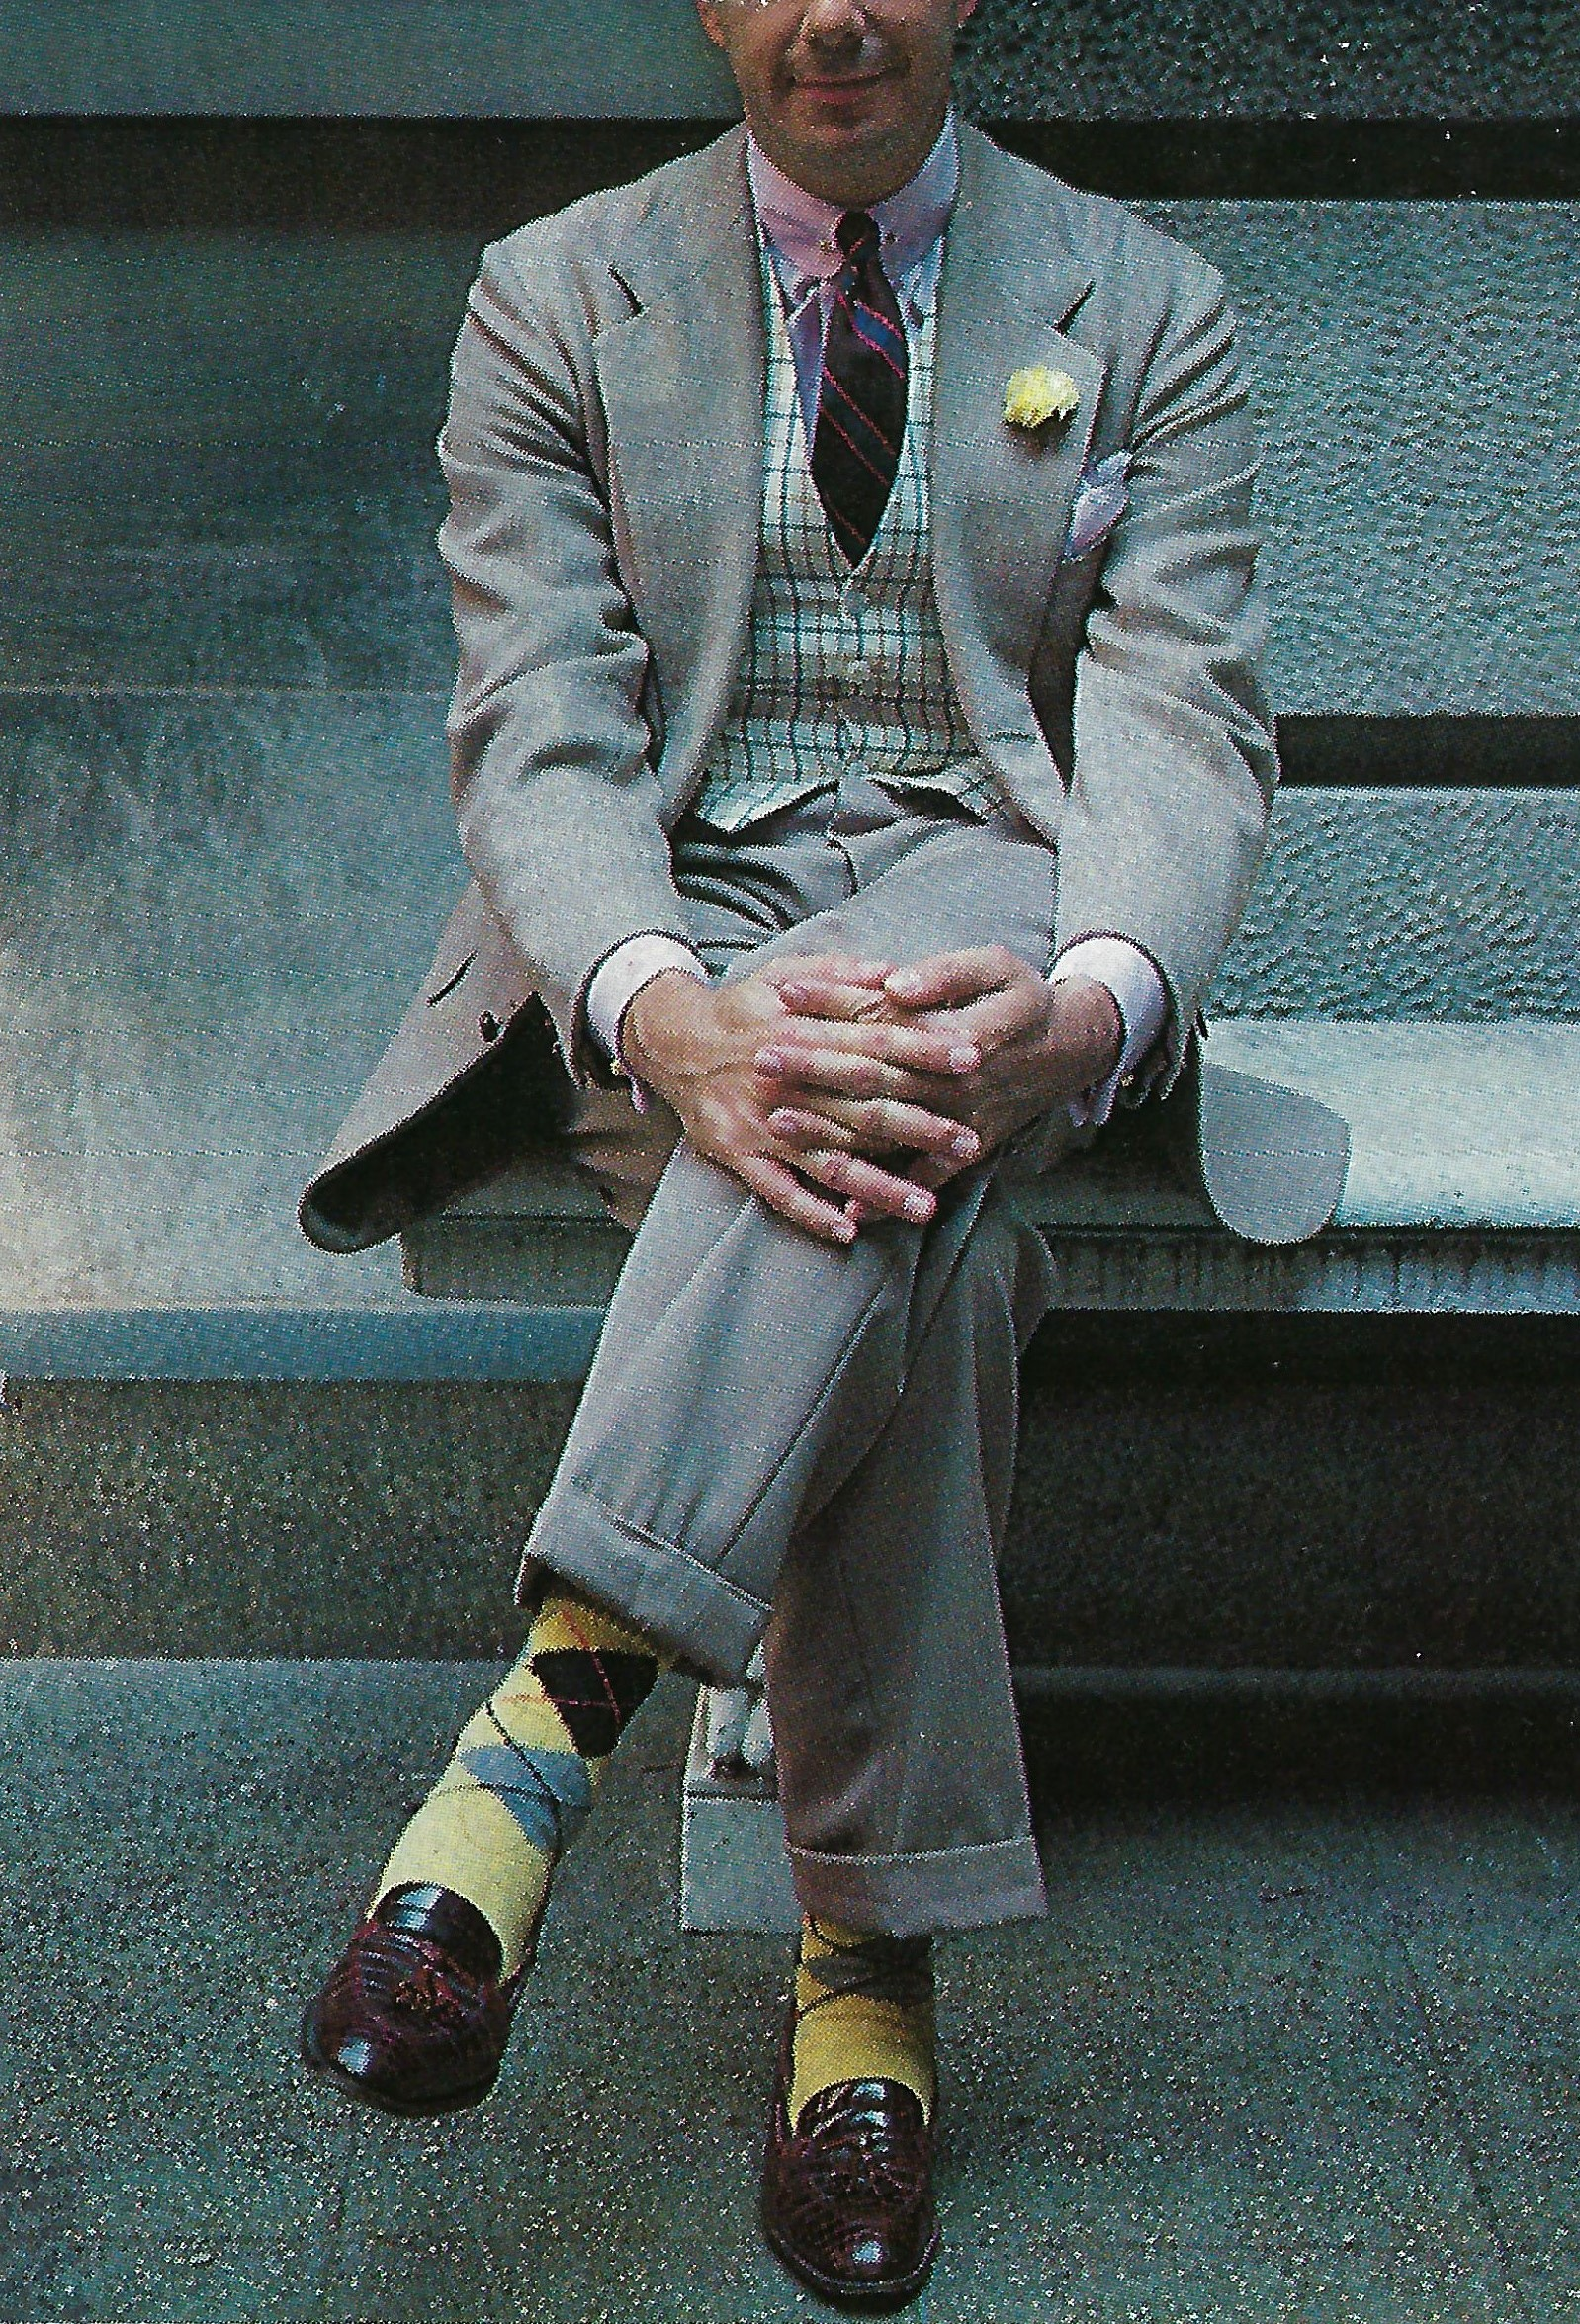 Rus in urbe:  pinned club collar, repp tie, cream wool tattersall waistcoat, fawn garbardine suit, hand-framed argyle socks, and crocodile loafers.